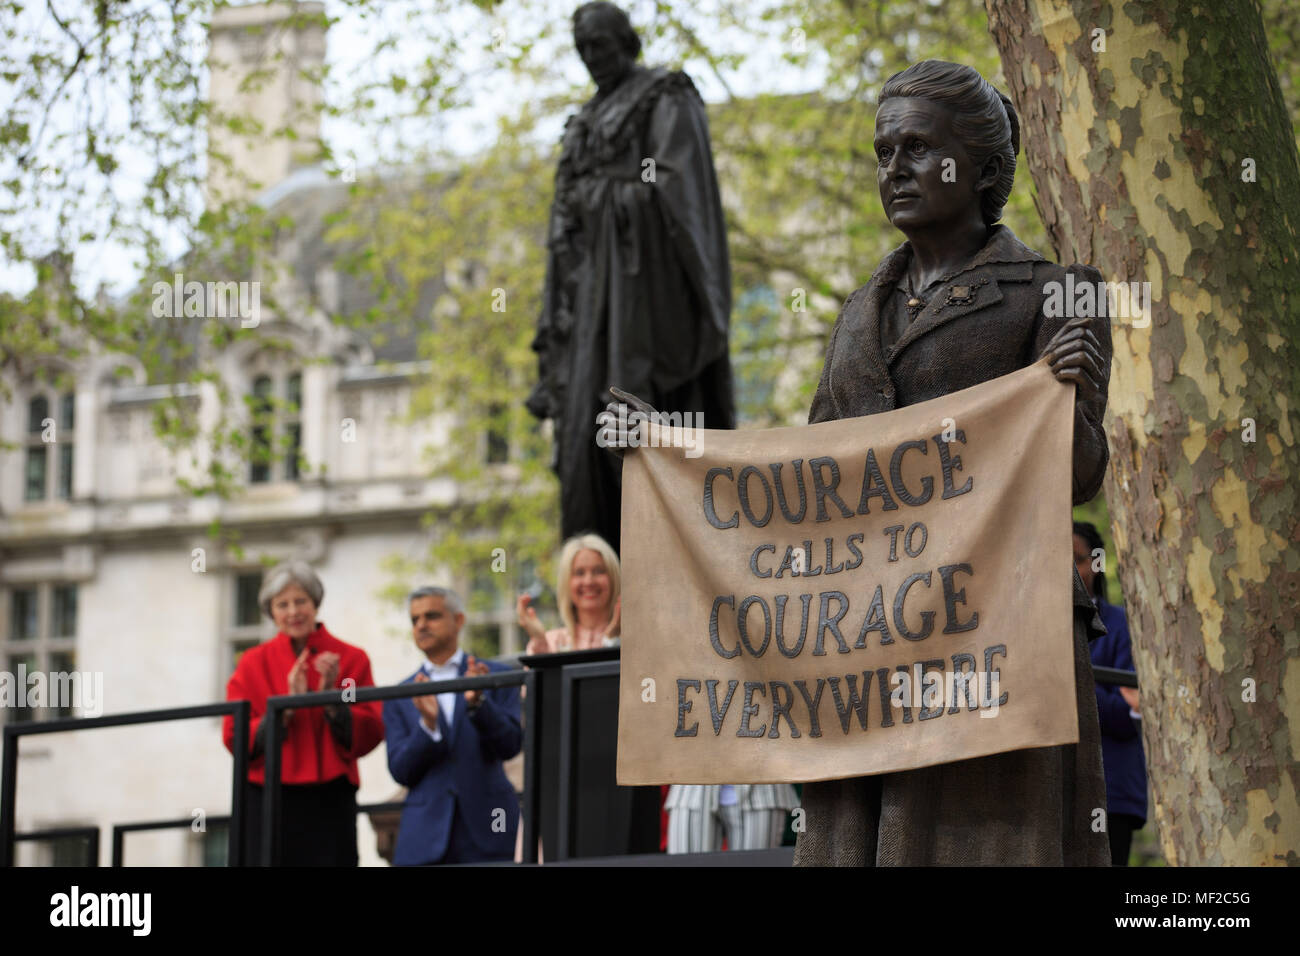 Westminster, London, UK, 24th April 2018, Unveiling of the Millicent Fawcett statue in Parliament Square, PM Theresa May and London's Mayor Sadiq Khan standby the unveiled statue of Millicent Fawcett, Credit: Richard Soans/Alamy Live News - Stock Image